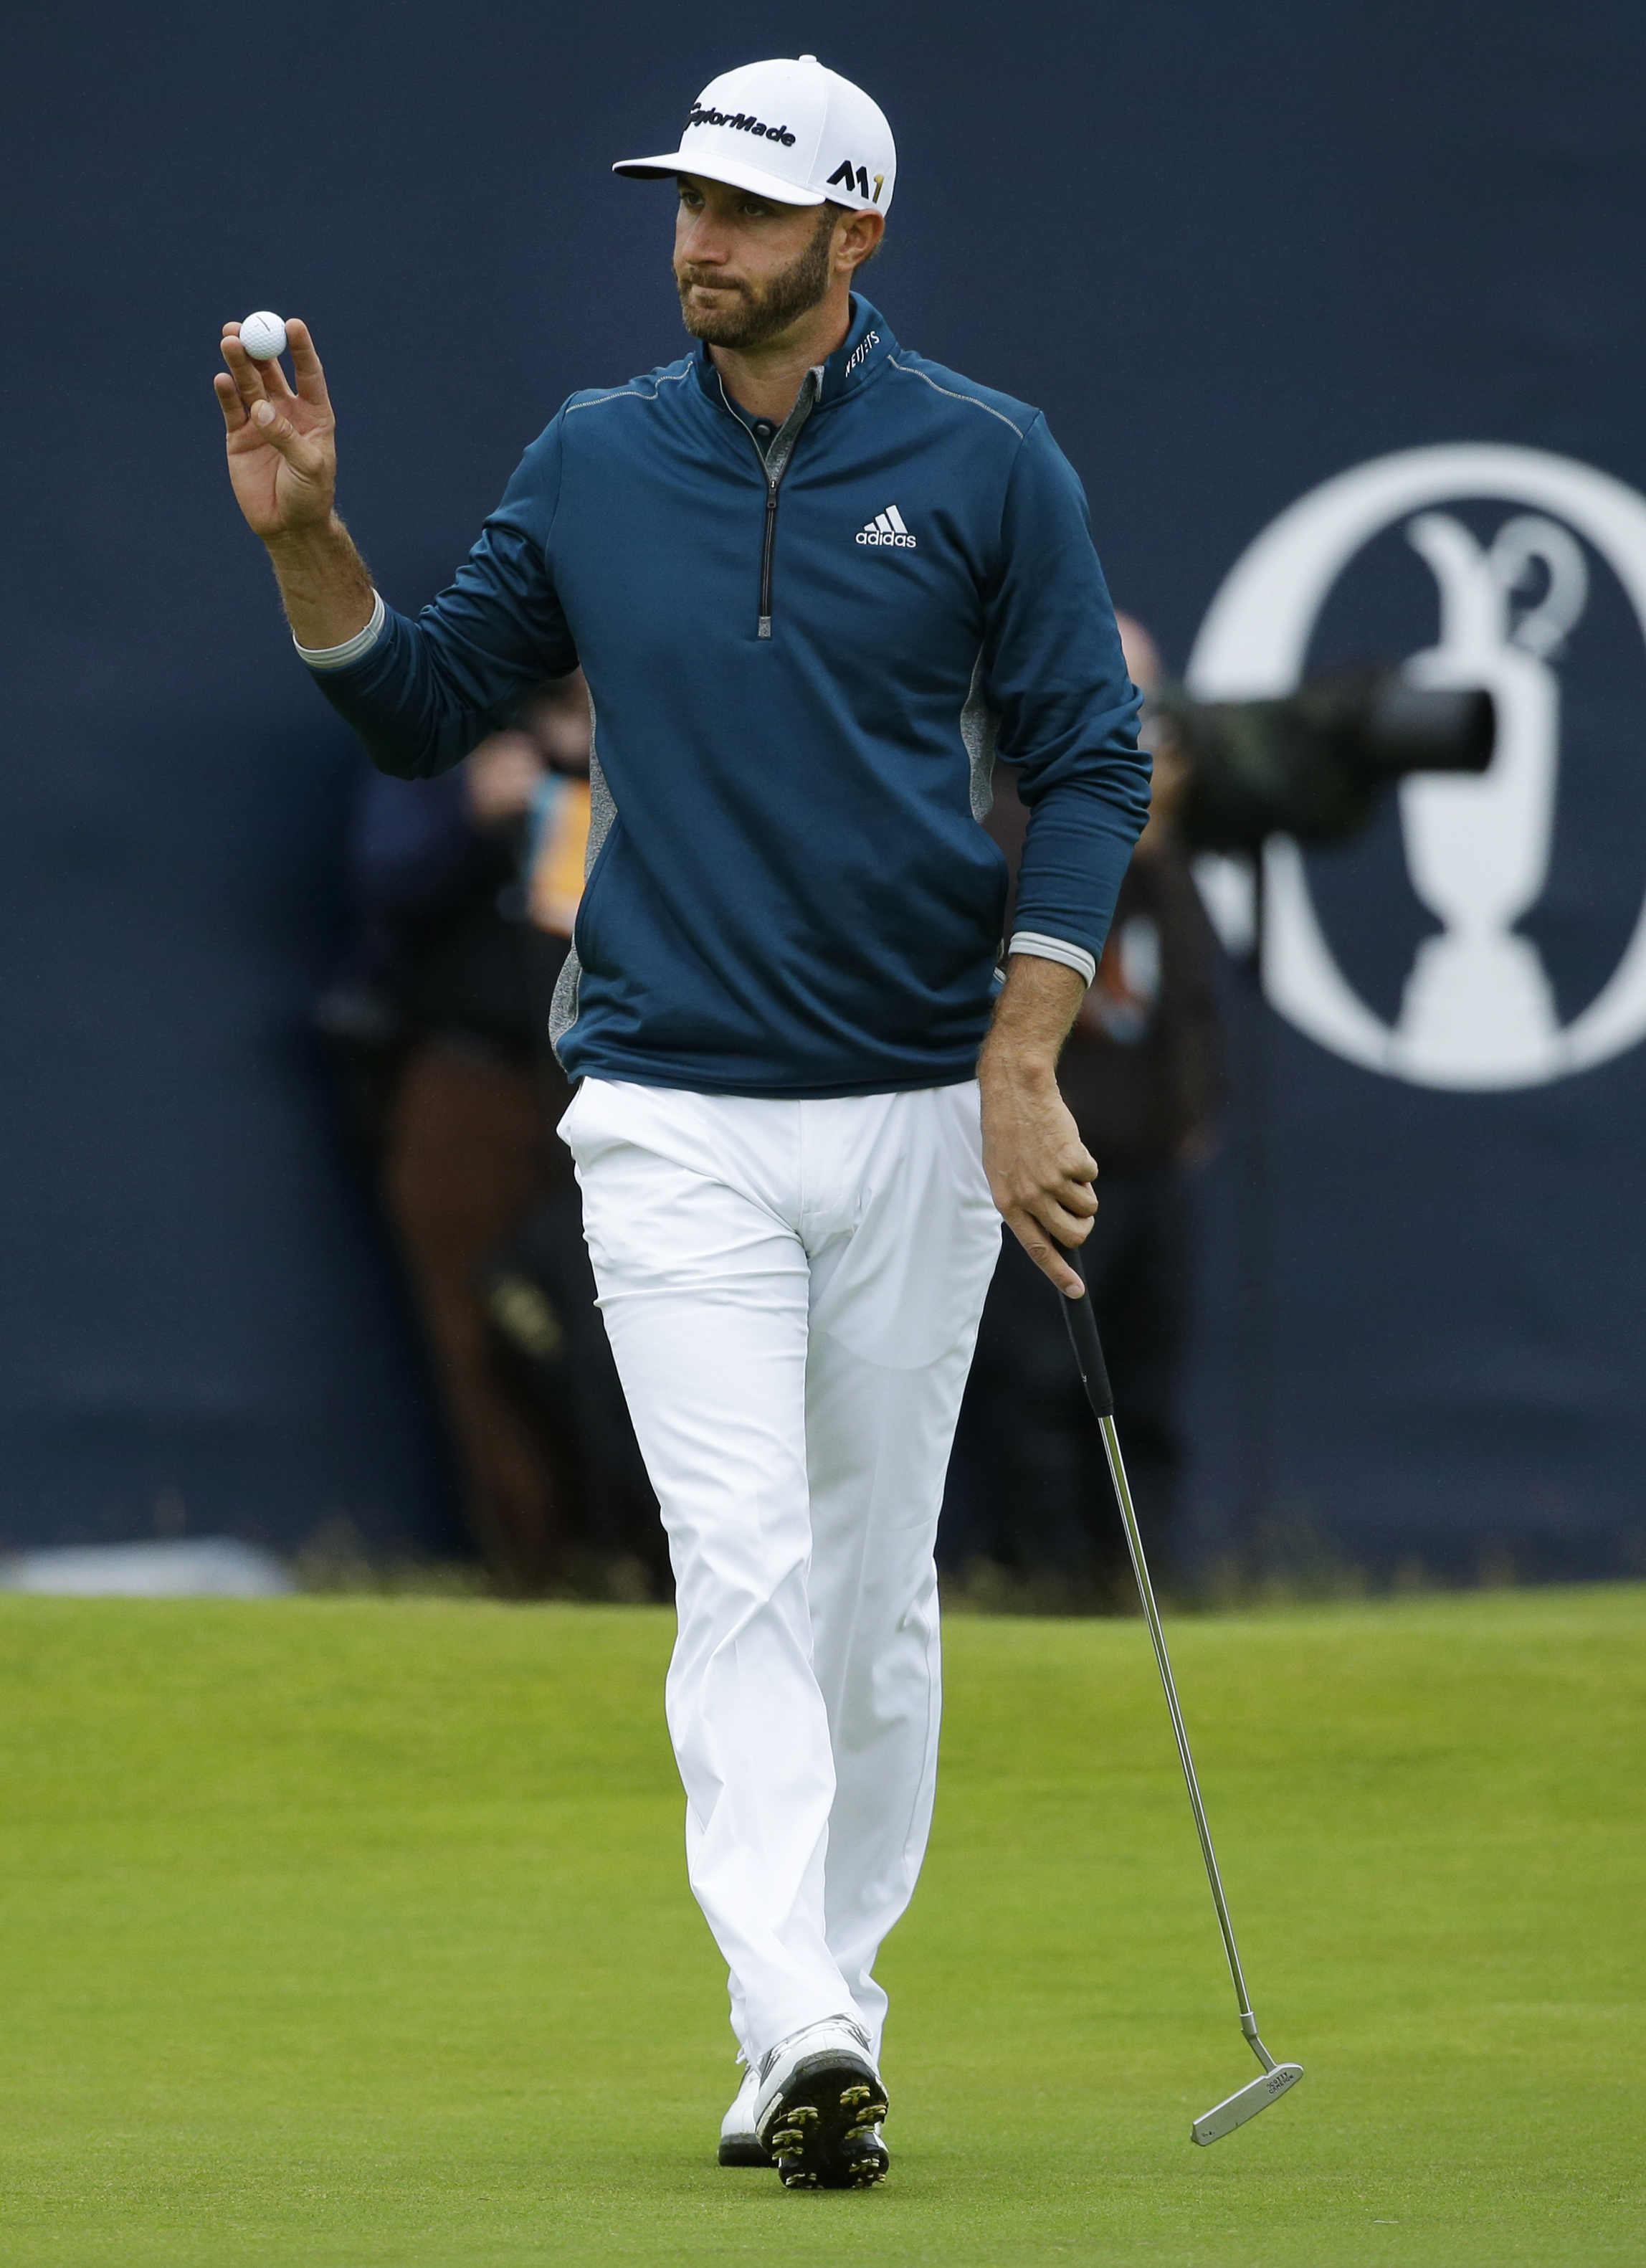 FILE - In this Friday, July 15, 2016, file photo, Dustin Johnson of the United States acknowledges the crowd as he walks off the 18th green after completing his second round of the British Open Golf Championships at the Royal Troon Golf Club in Troon, Sco